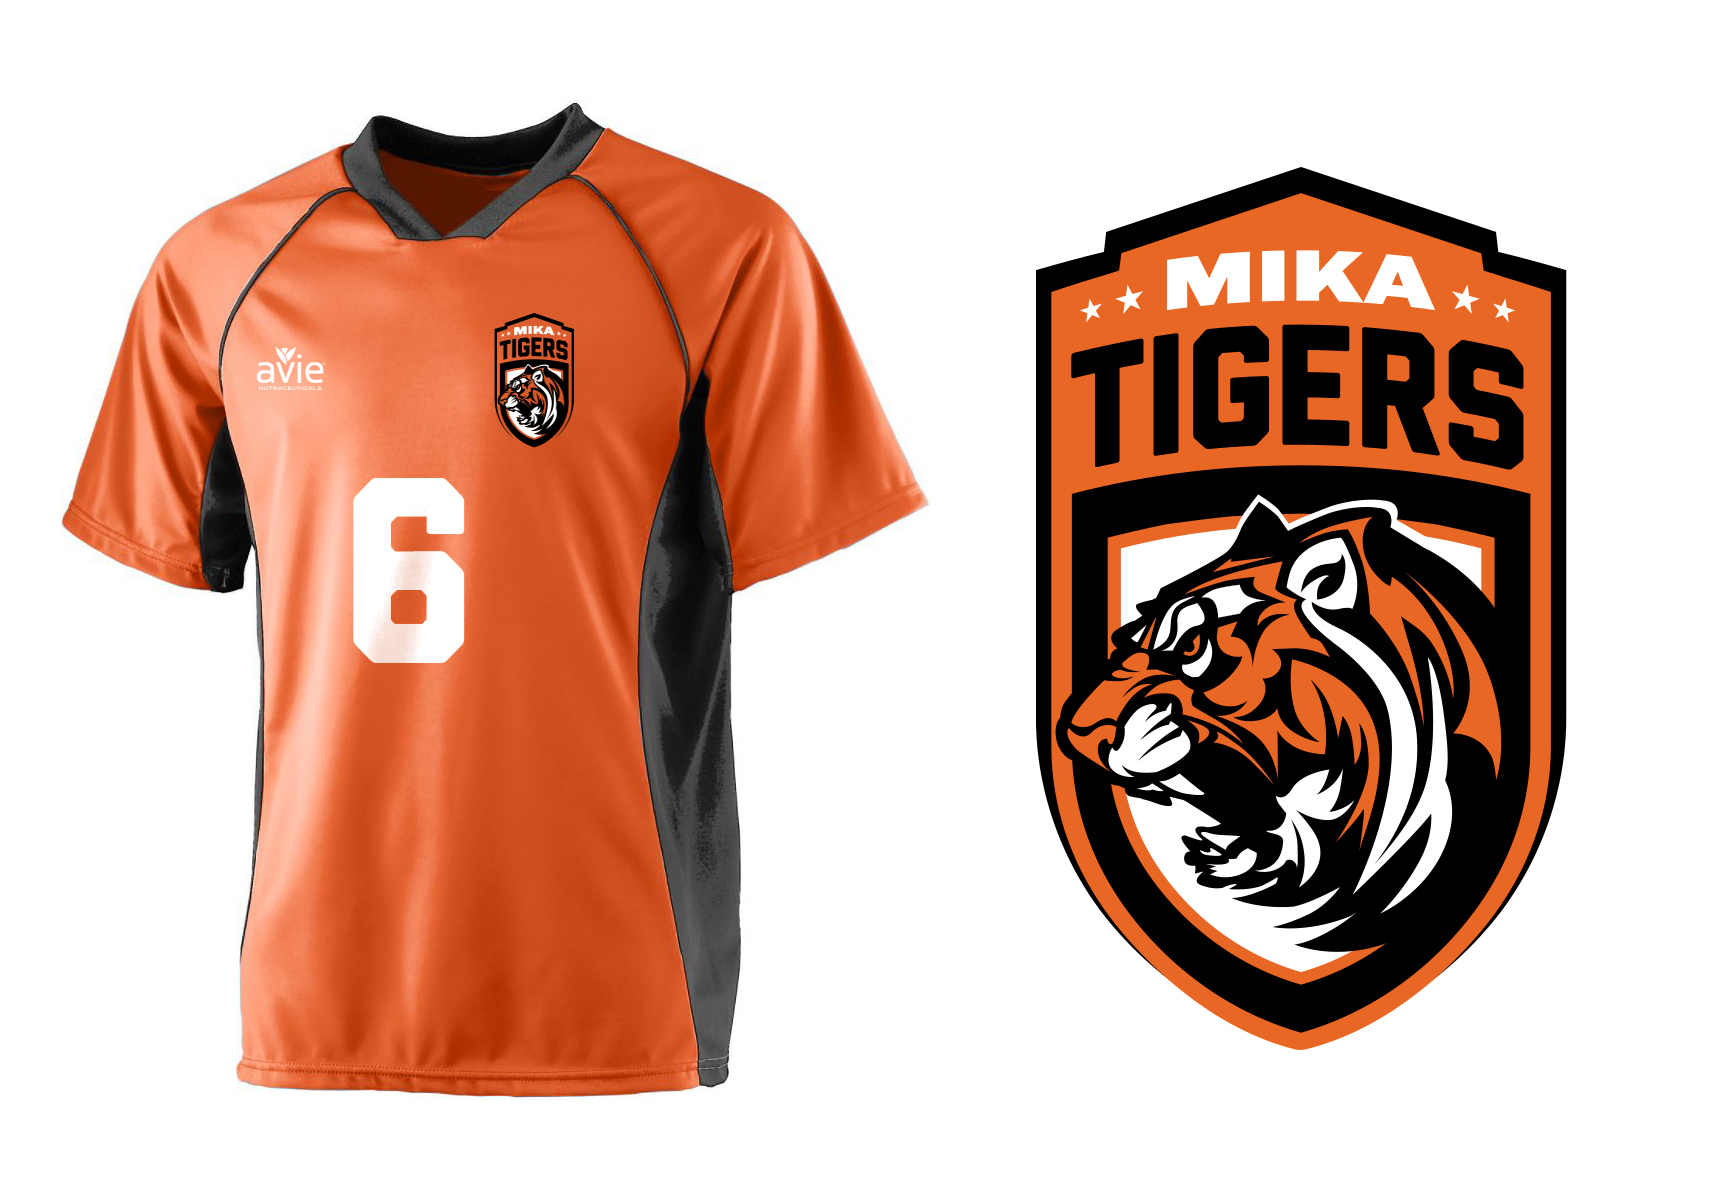 Mika Tigers Soccer Jersey created for Avie Nutraceuticals